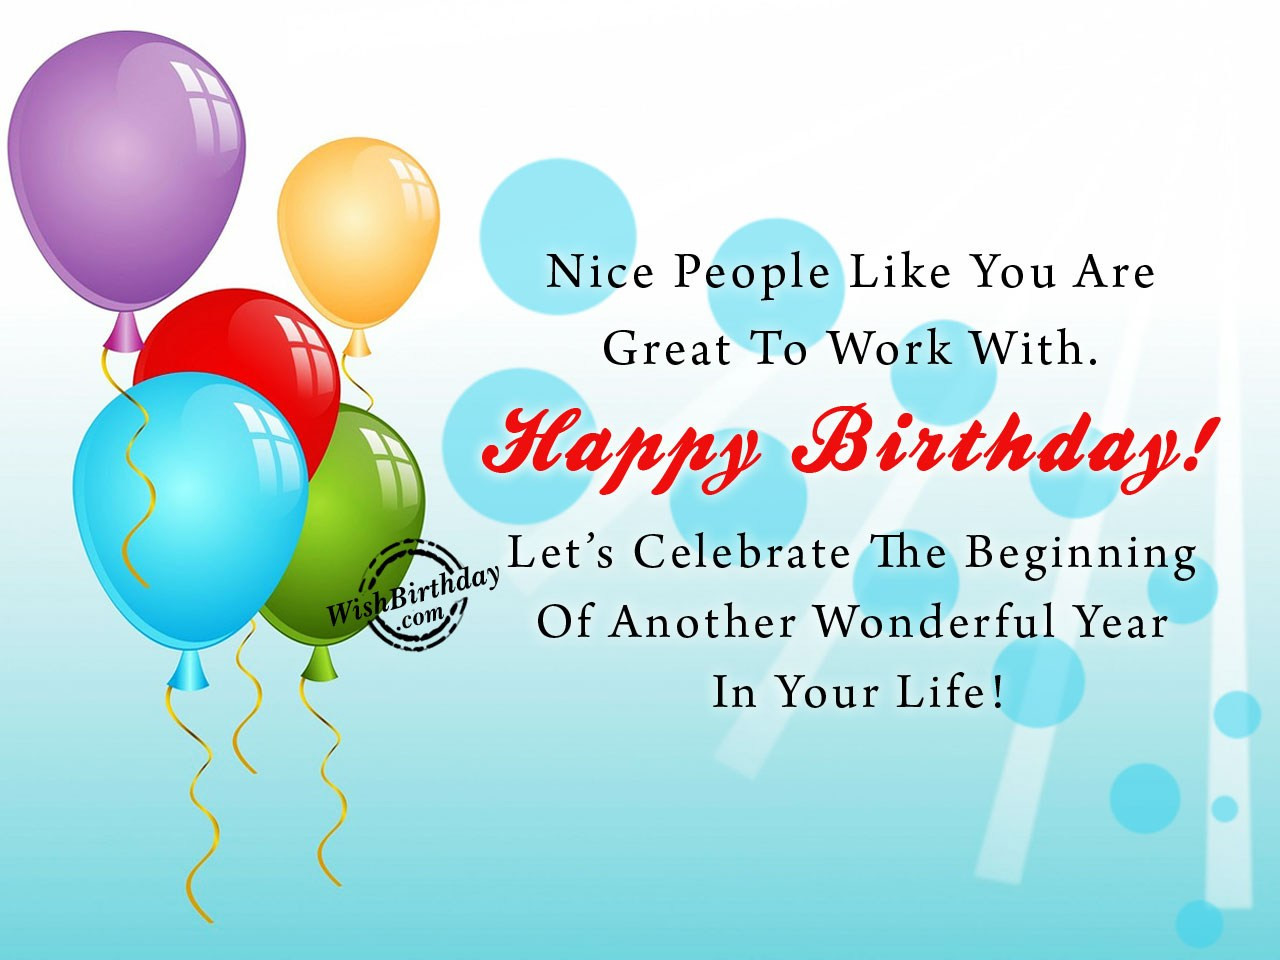 Best ideas about Coworker Birthday Wish . Save or Pin Birthday Wishes For Colleague Birthday Now.